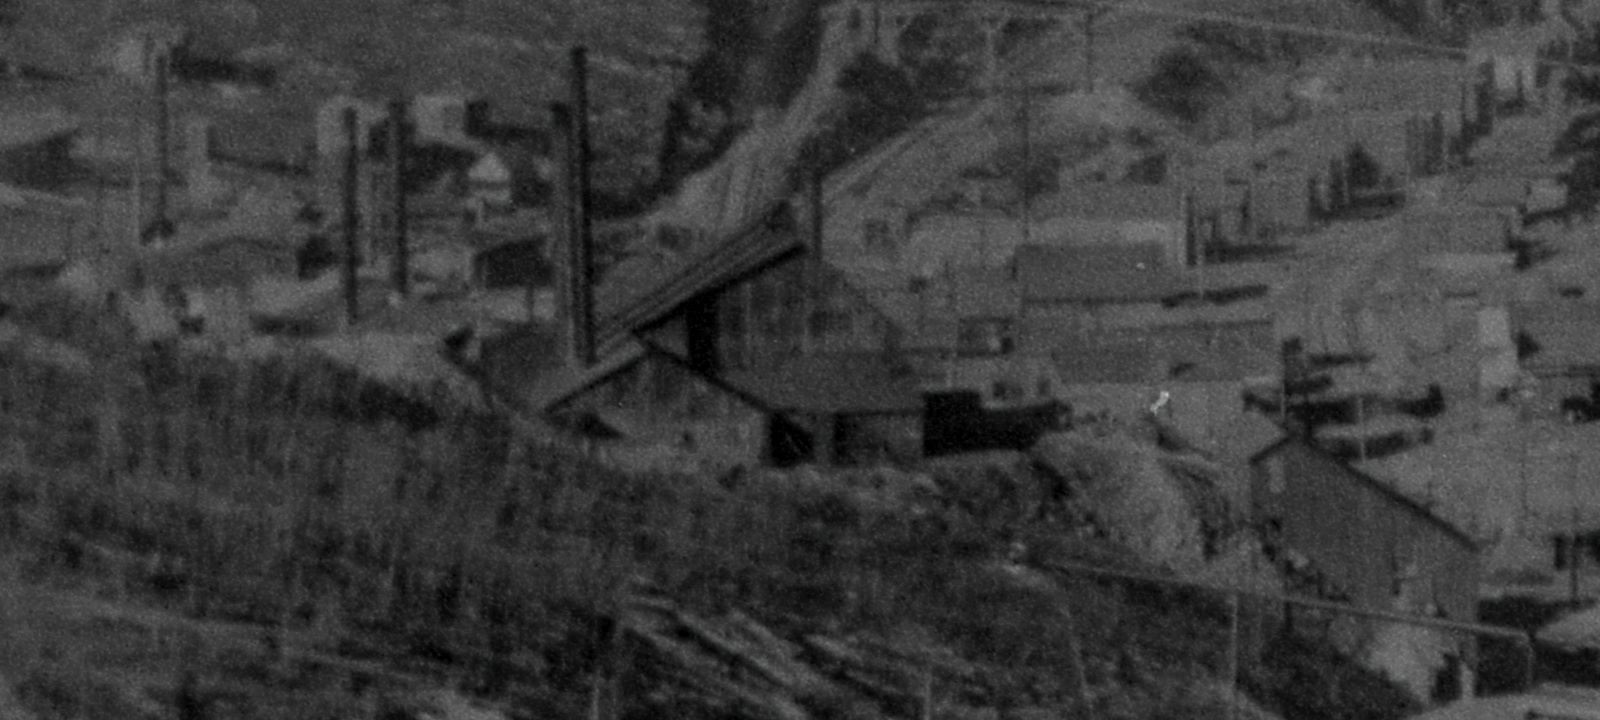 View is a negative type of Photo taken by a camera of an older type of Photograph, with not the best quality film so it is rather grainy sadly. Cropped from a view of the Trolley car named Grace climbing Gold Hill high above Poverty Gulch, along the original steep High Line grade, part of the roof and front trolley pole is seen in lower right-hand corner poking into the image towards left. * The Abe Lincoln is seen center with its Shaft House and Power Plant and shed all attached together, while the Ore-House is seen towards lower right-hand corner. * Poverty gulch houses is seen on the right-hand side, and the eastern leg of the M.T. Wye is seen about middle top, where also part of the spur up to the Midland Sampler is seen.